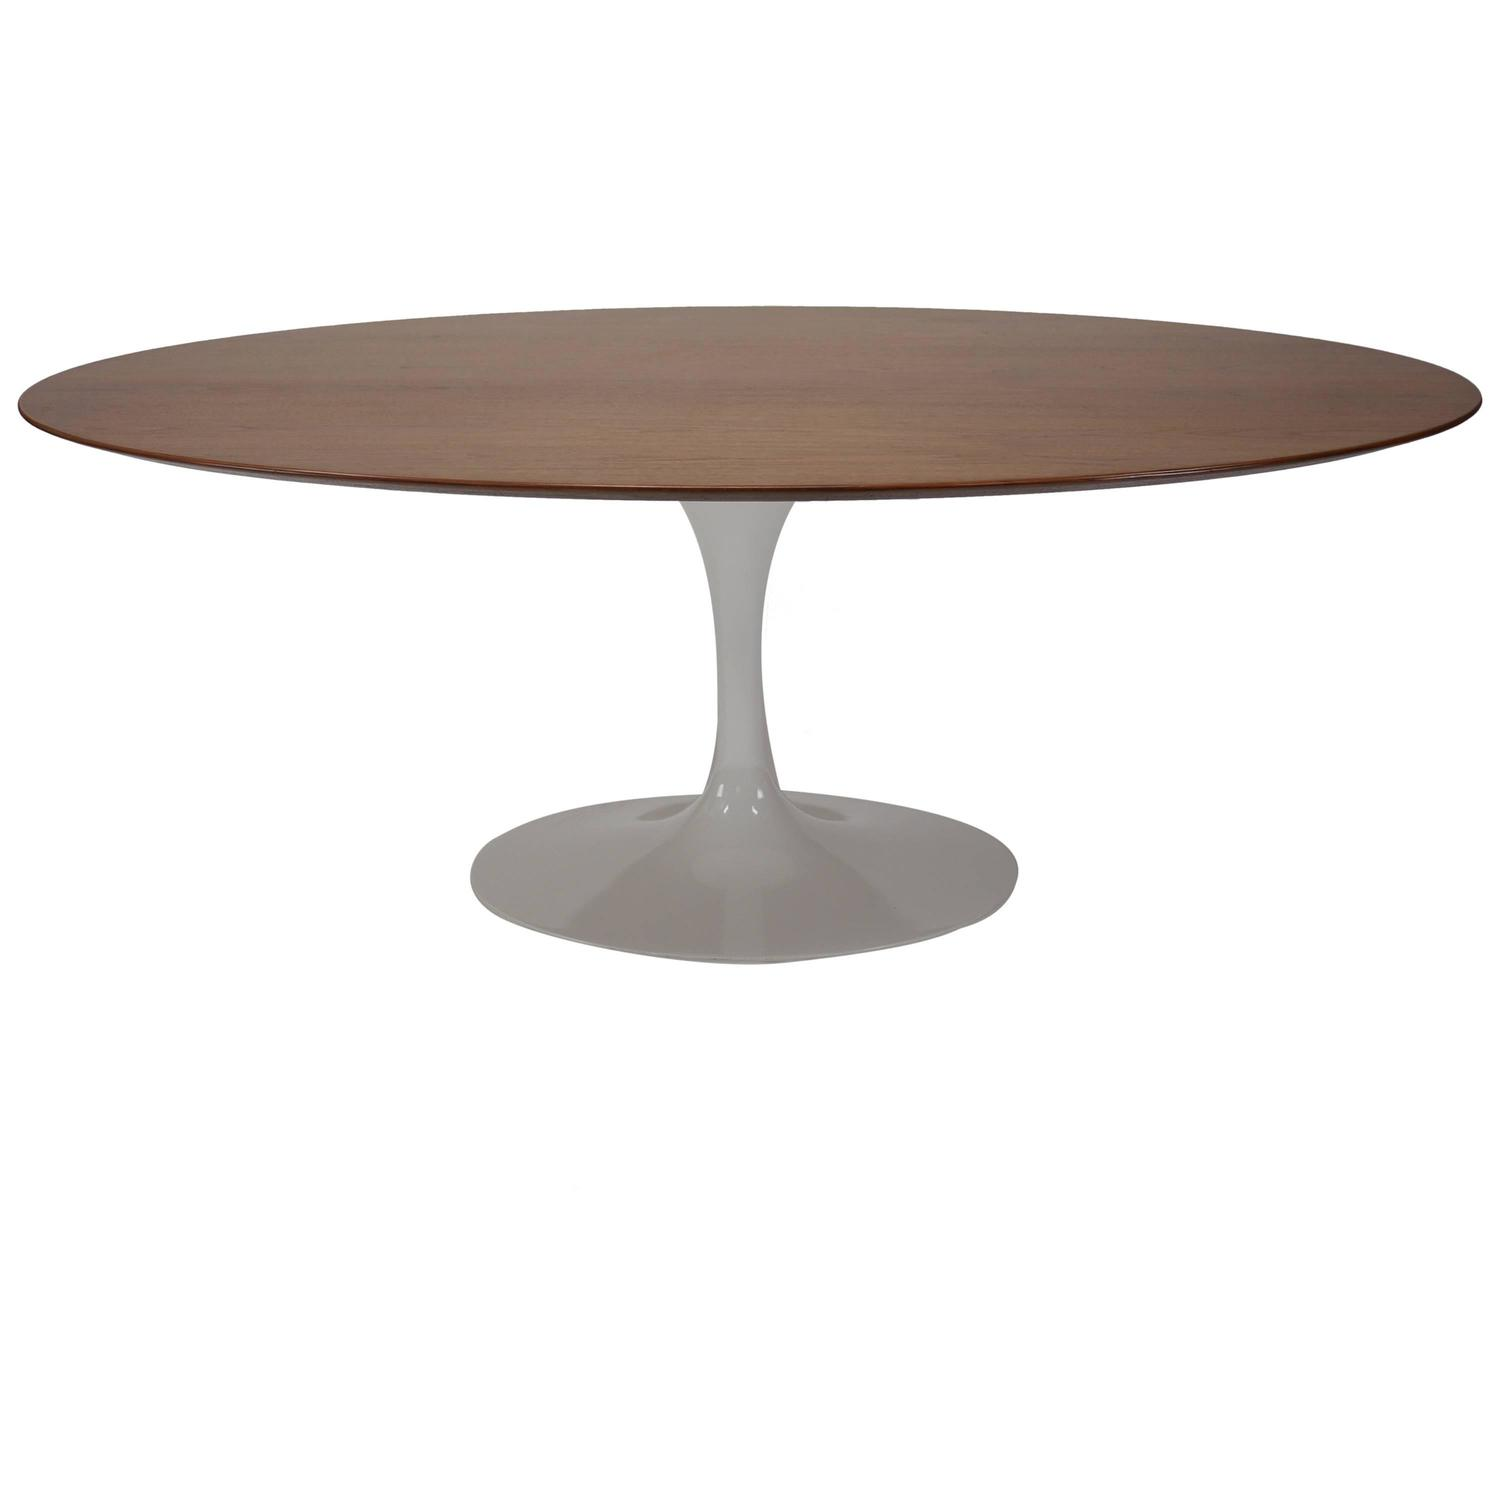 Table basse ovale saarinen knoll for Table basse kreabel